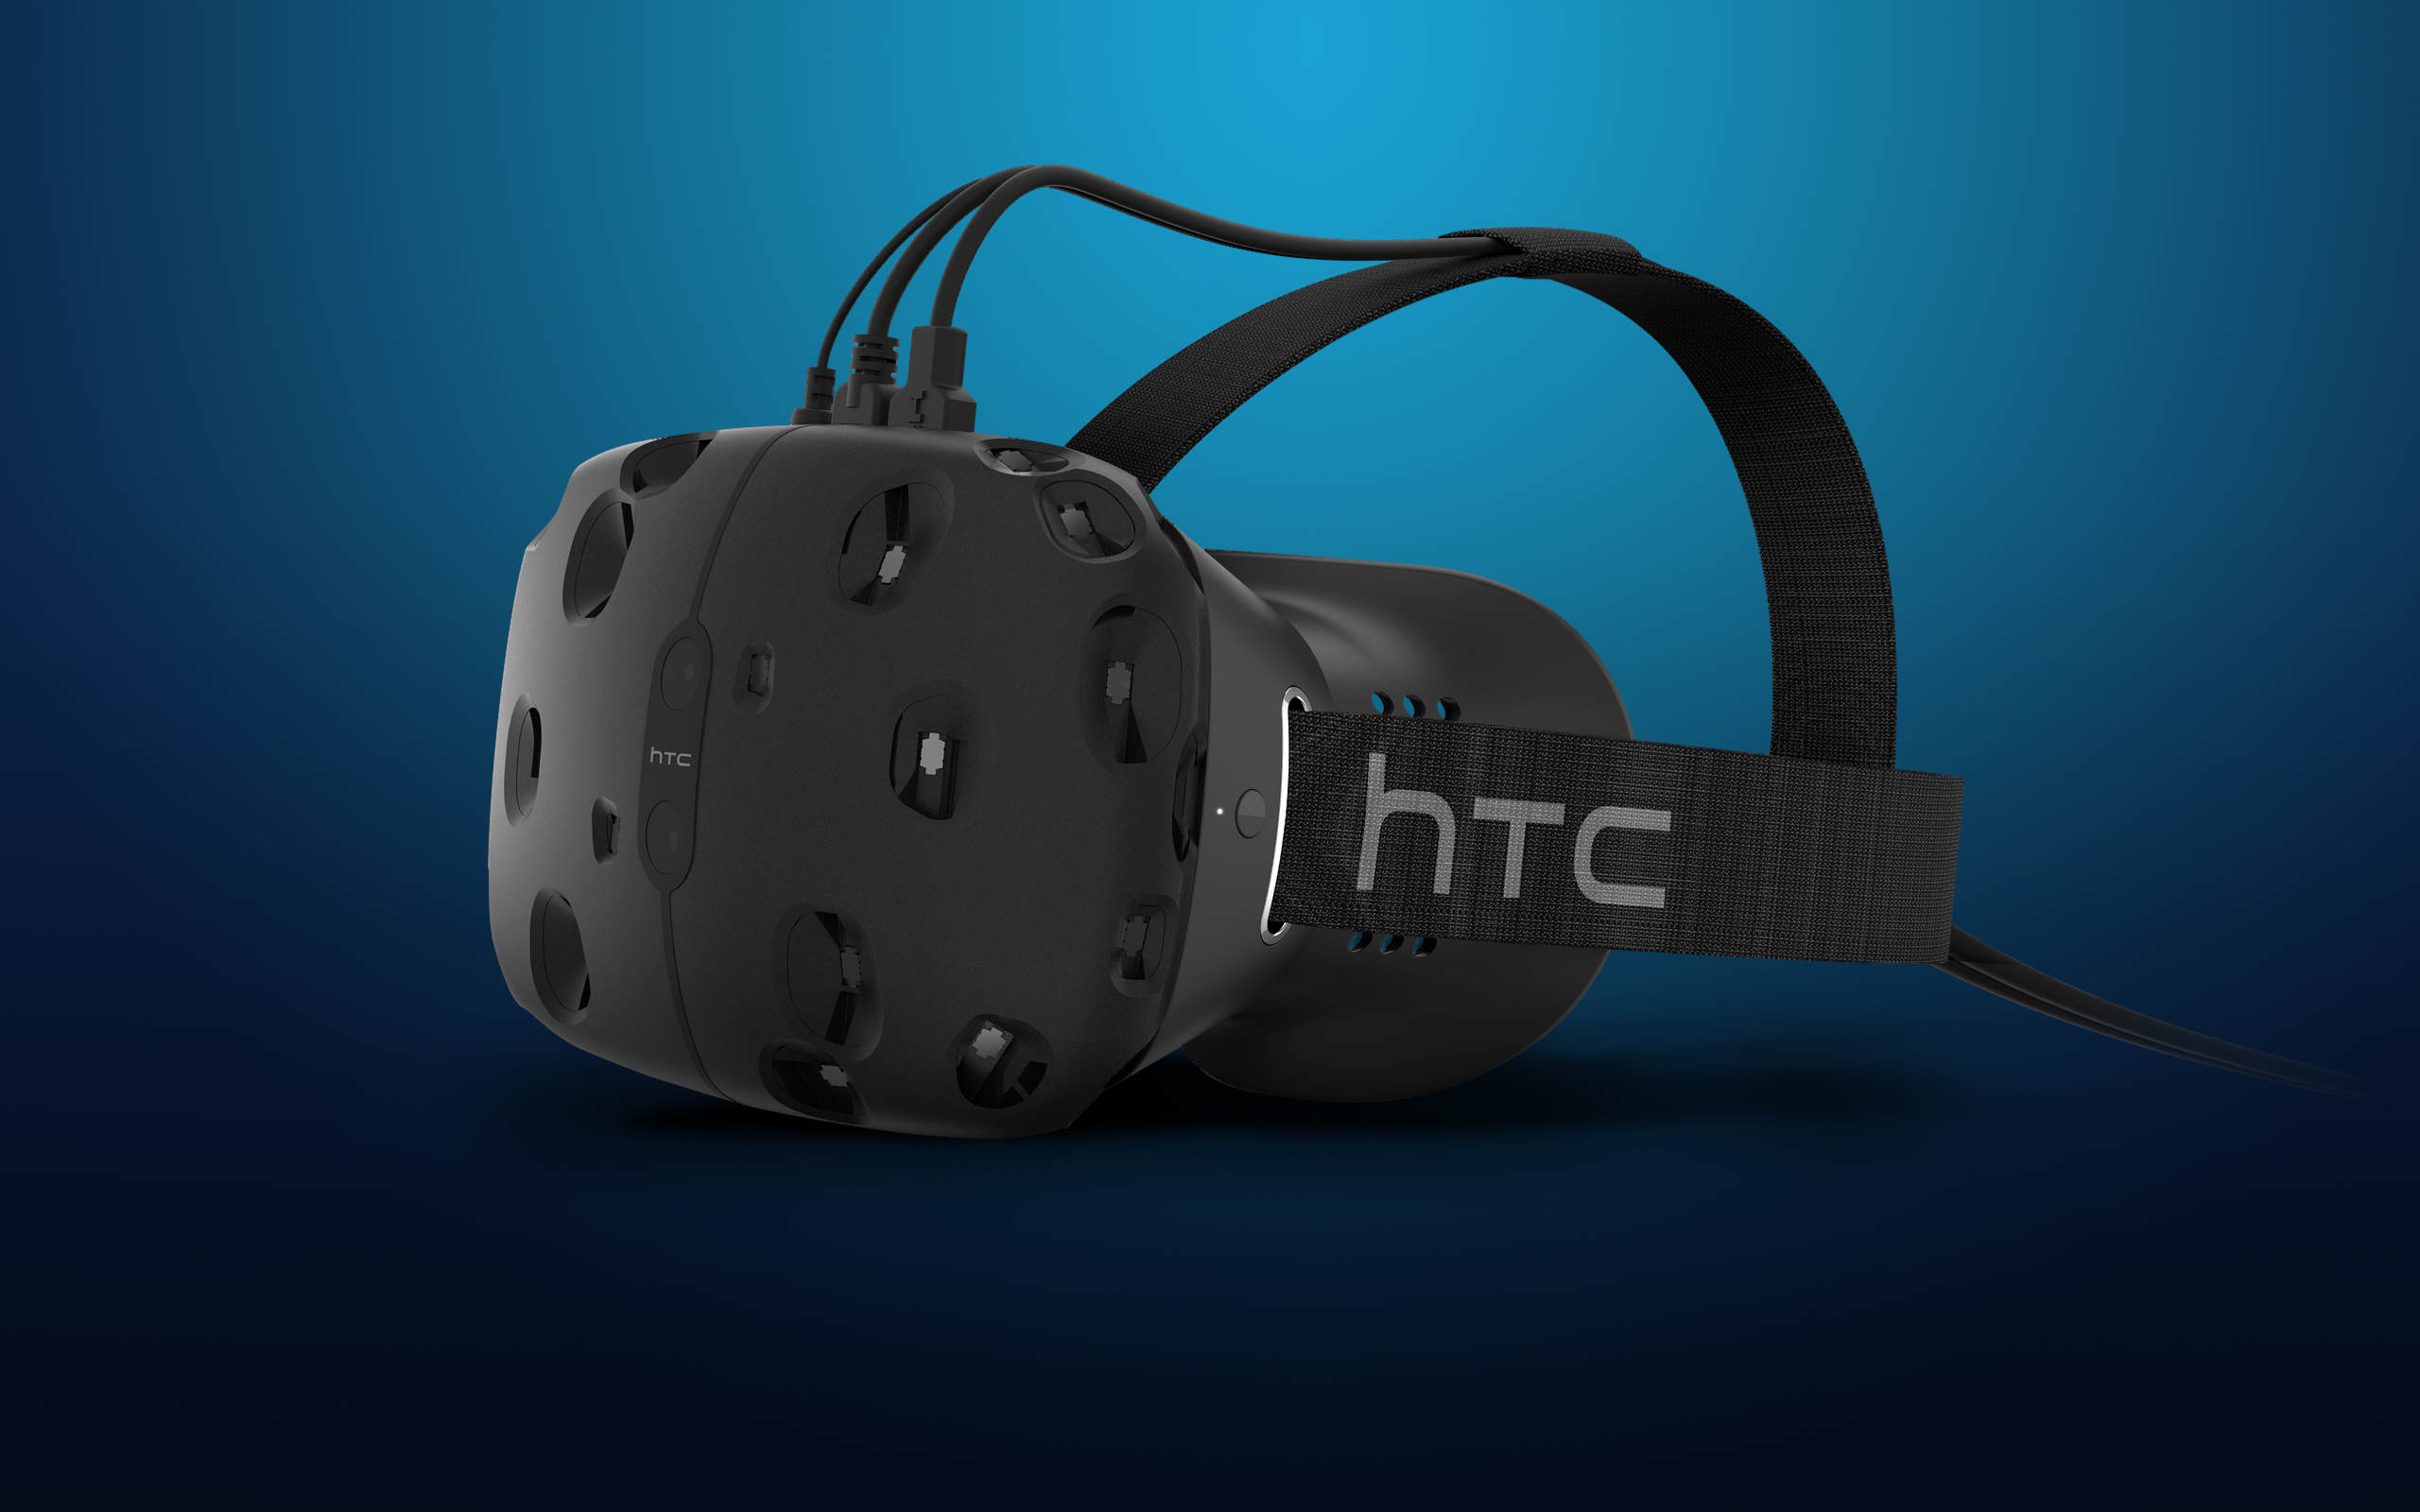 SteamVR Vive HTC Vive Pre orders Are Now Live, Heres The Details